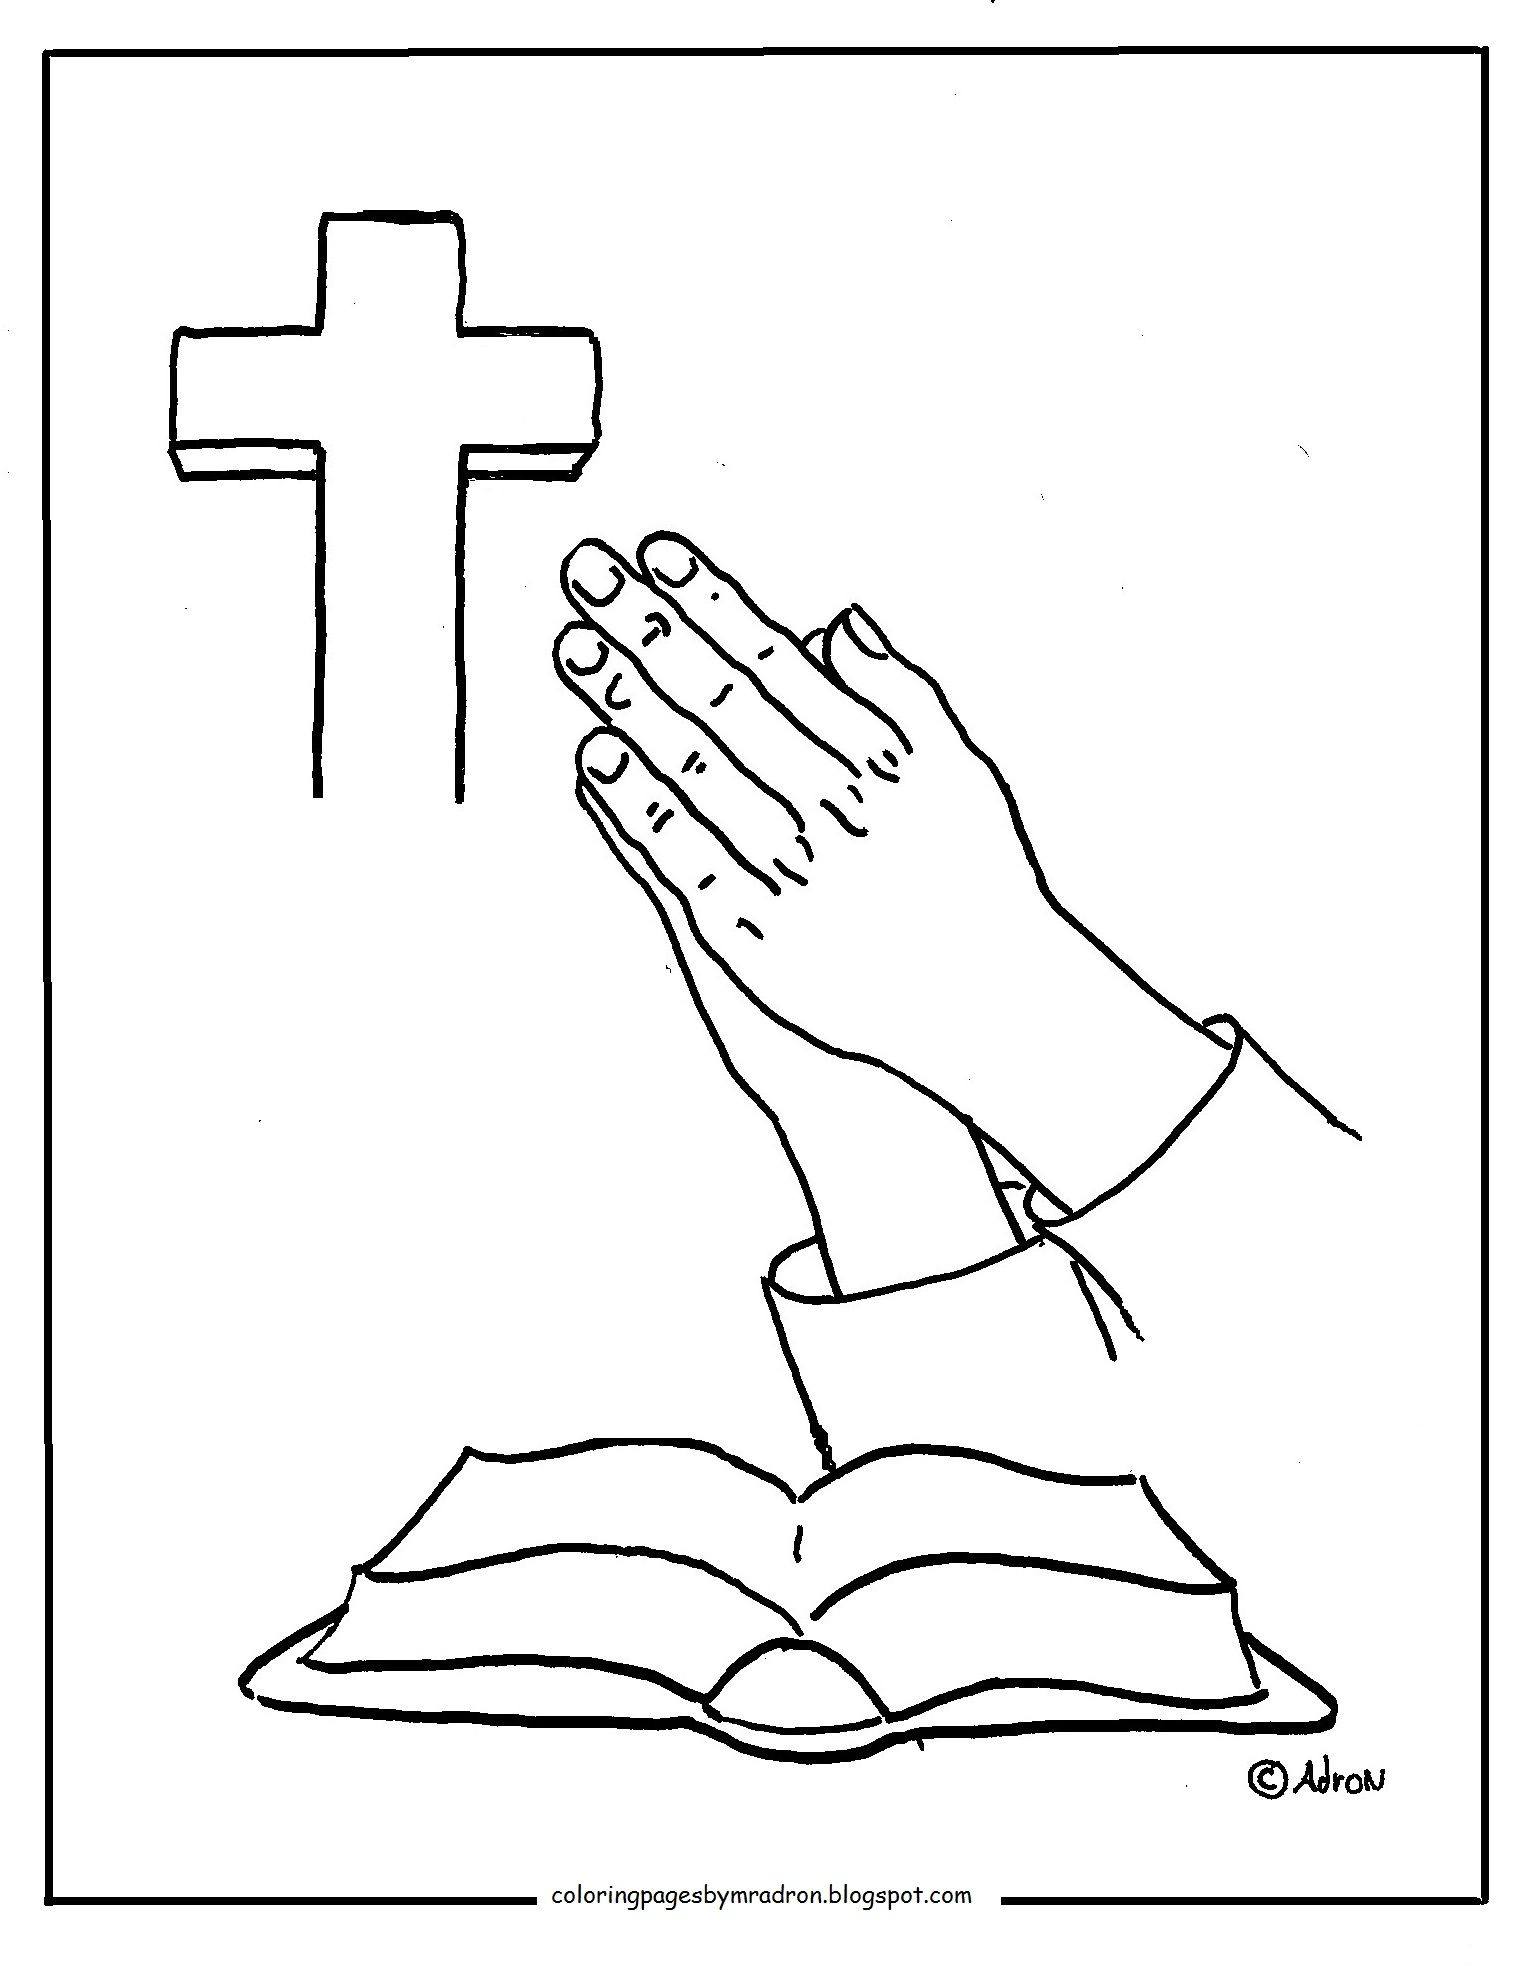 Praying Hands Cross Bible Bible Coloring Pages Bible Verse